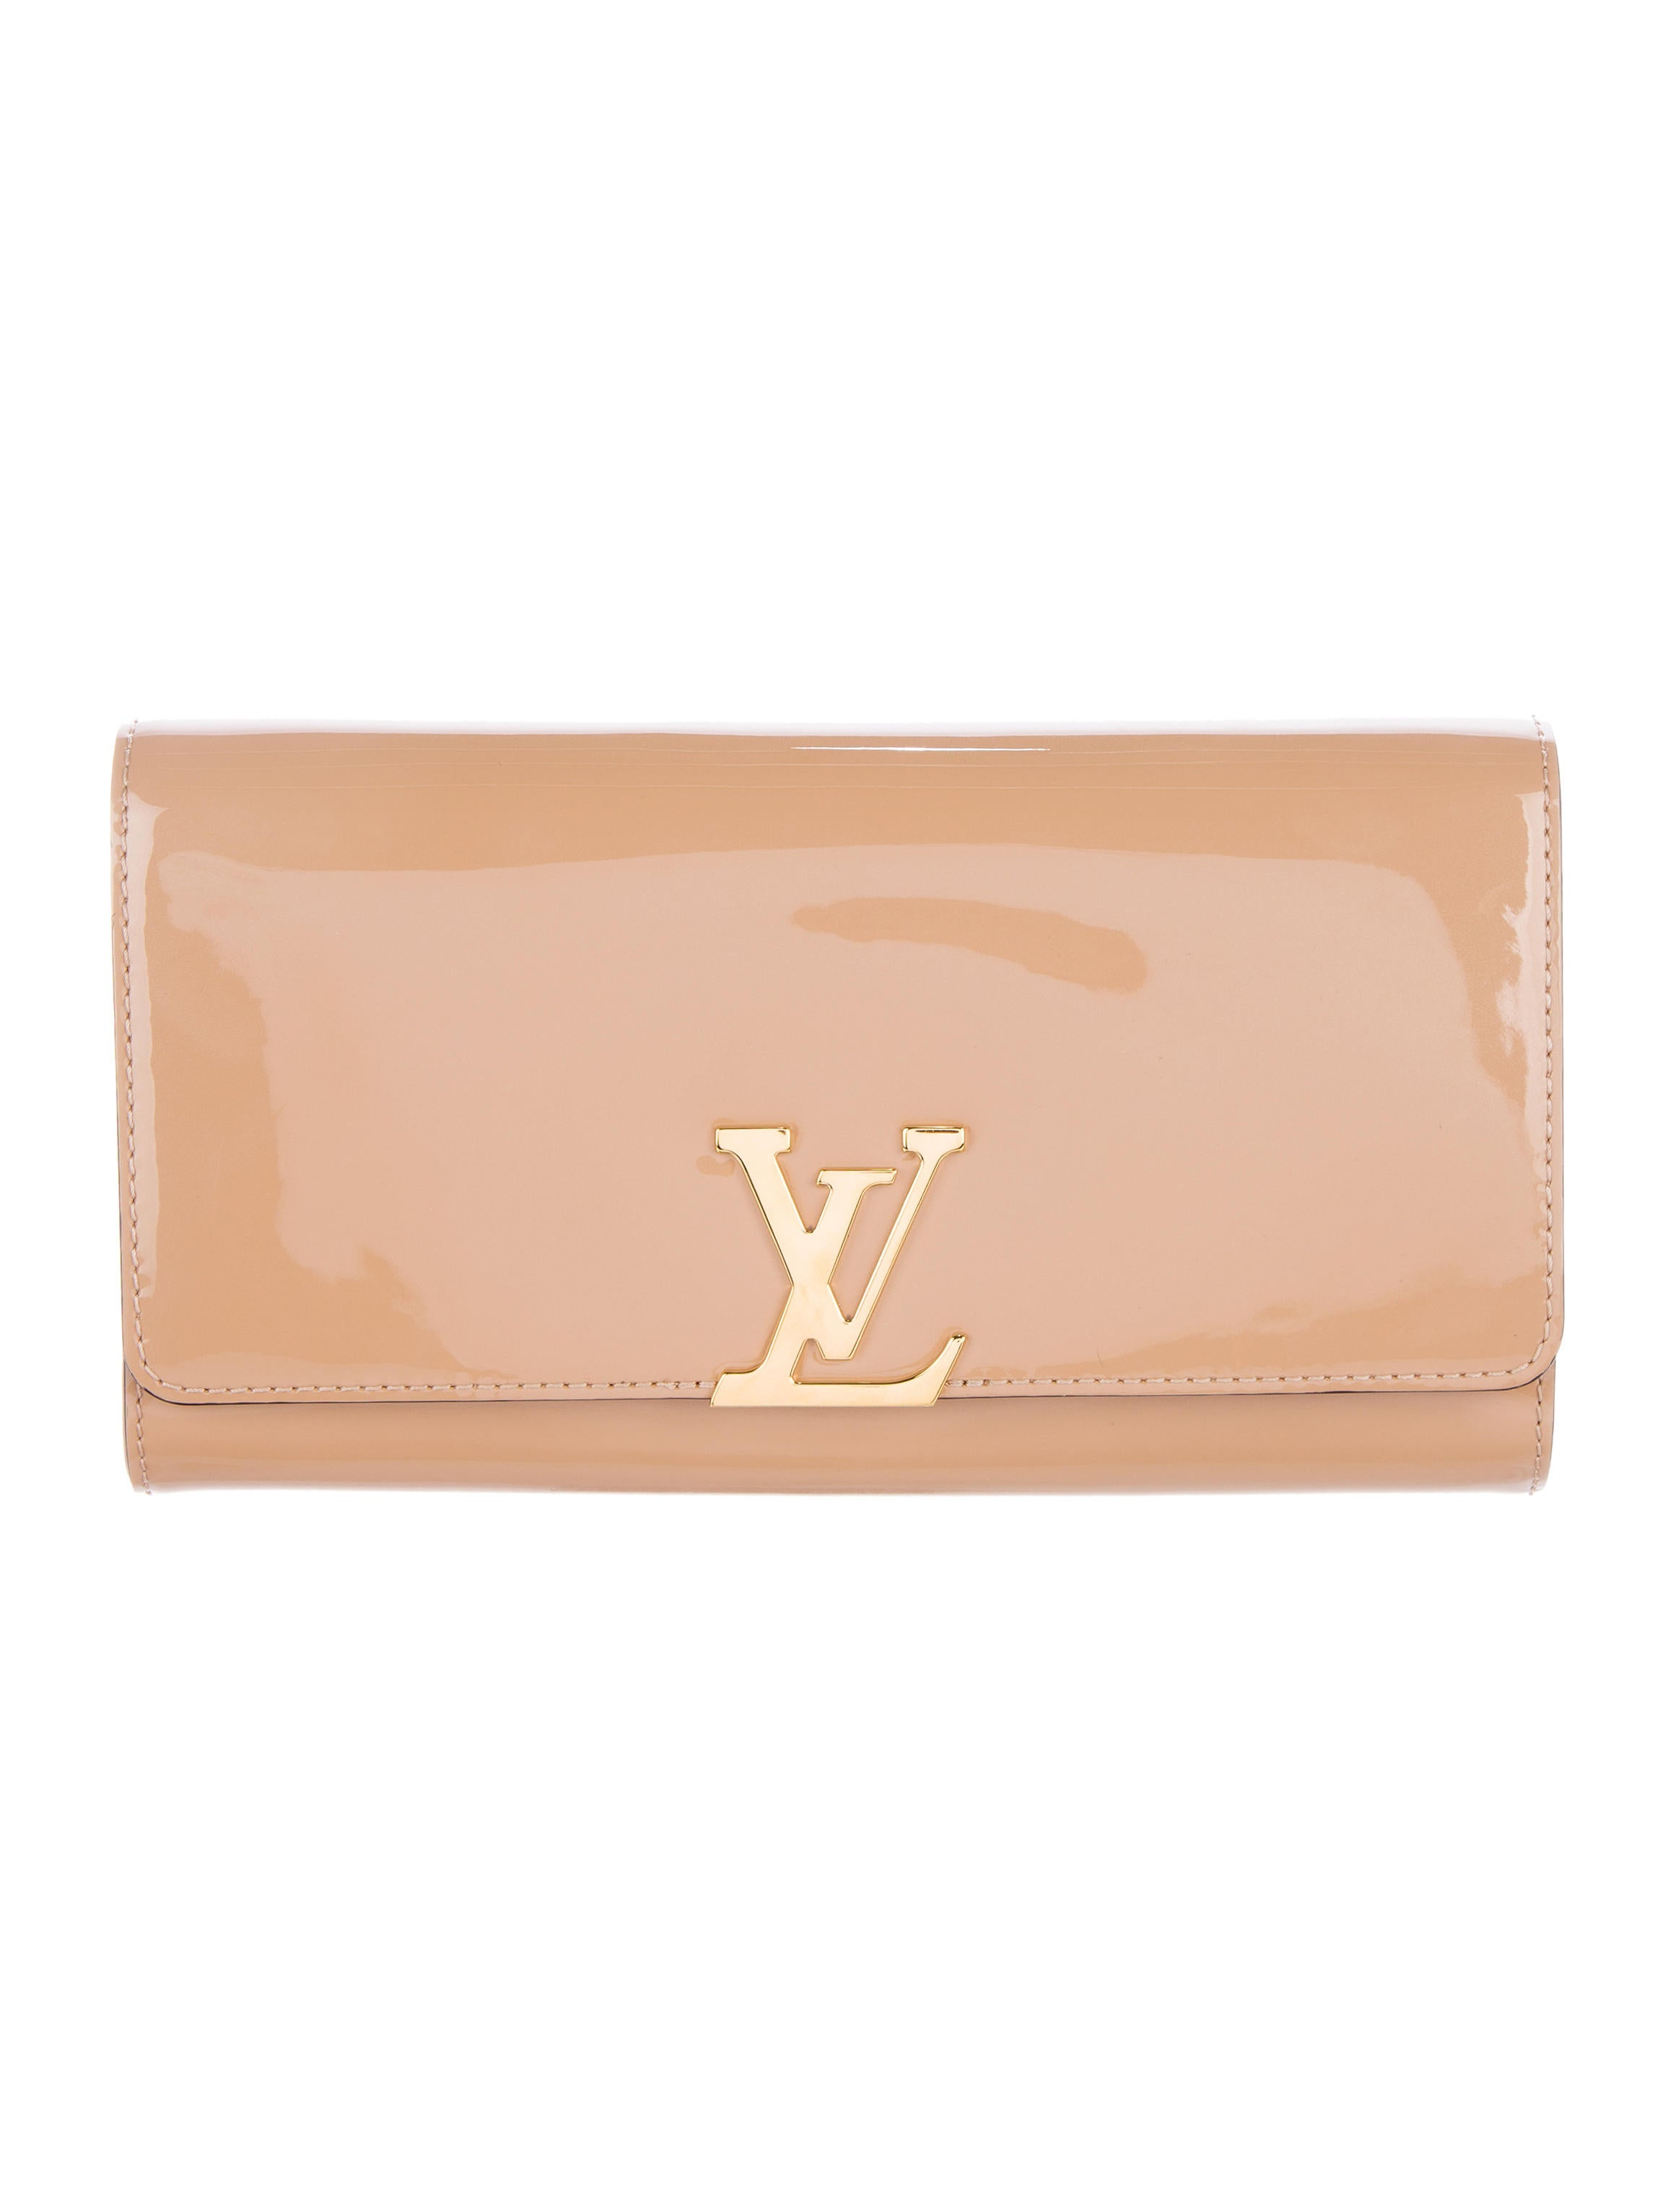 louise vuitton Shop authentic, pre-owned louis vuitton up to 95% off.